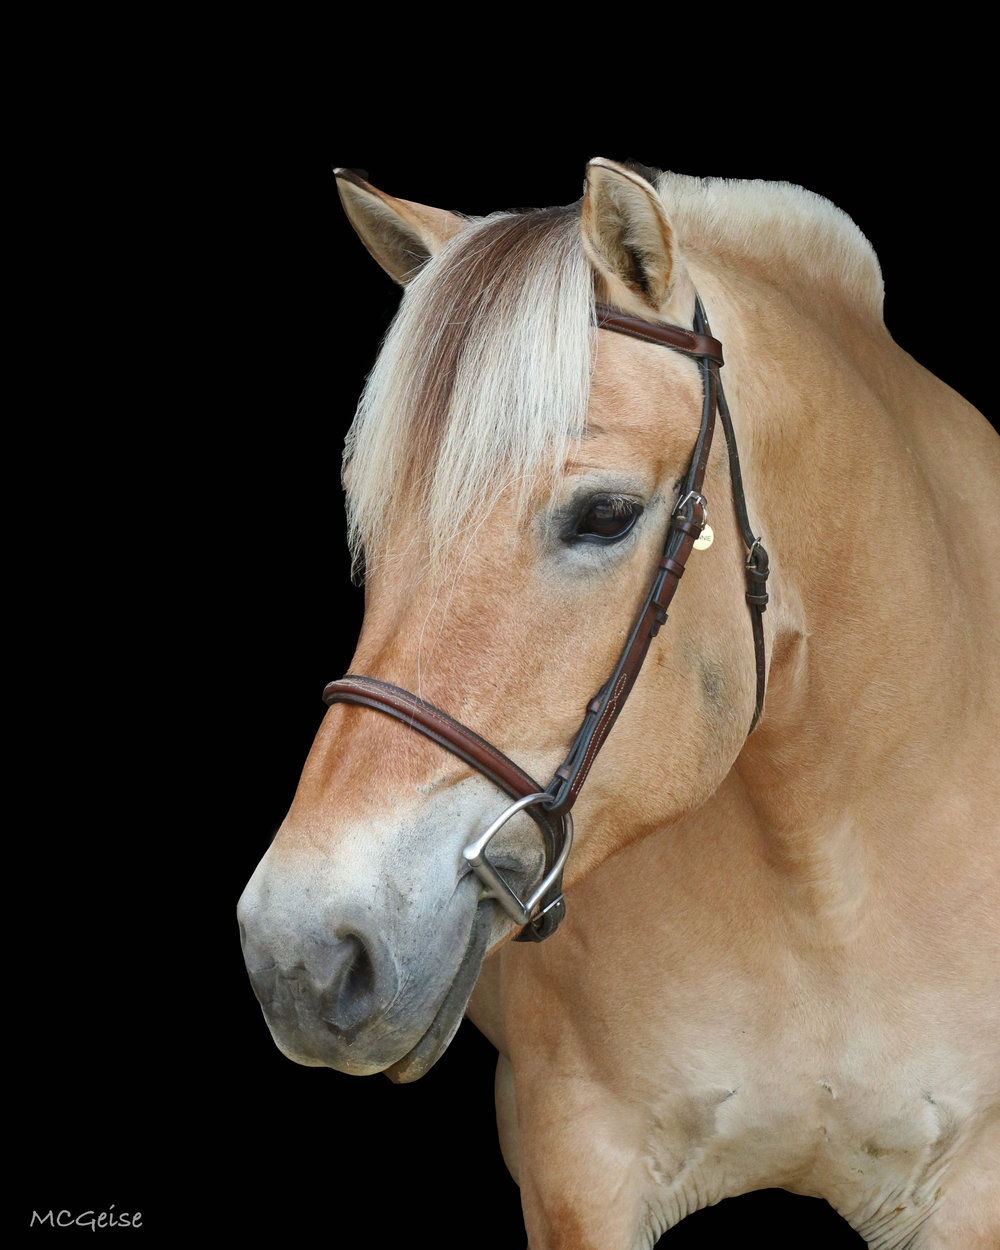 Birthday: May 28, 2003 Breed: Norwegian Fjord Mare Color: Brown Dun Height: 14.2 hands Discipline: Pleasure Show Name: Minnie Sterjna Donated by: Sheila and John Tweedie